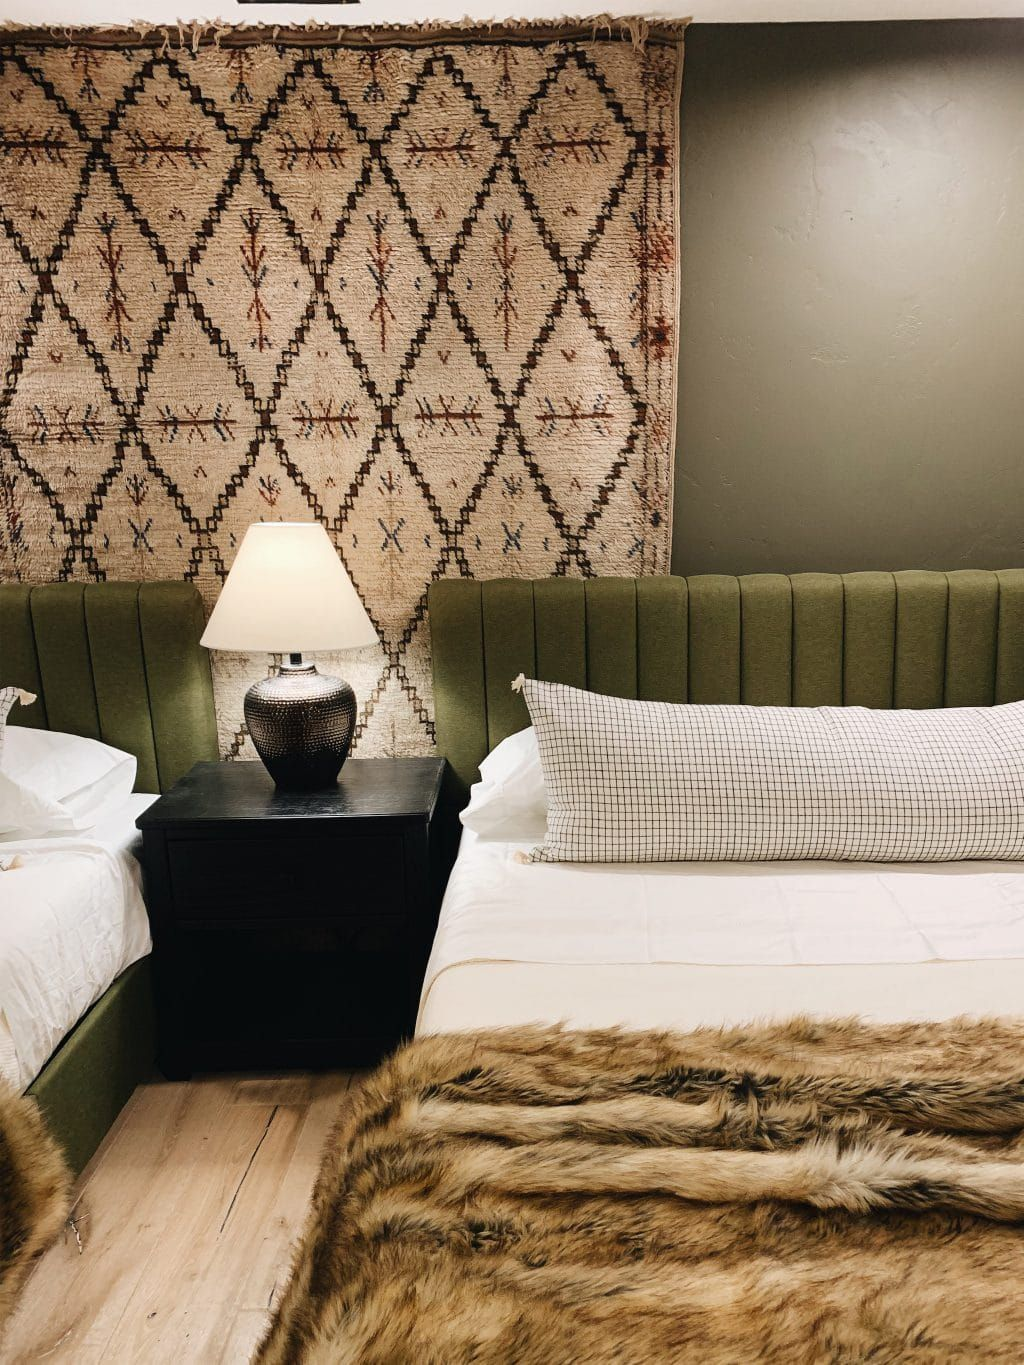 The Easiest Way To Hang A Rug On A Wall Green Rug Bedroom Arranging Bedroom Furniture Living Room Inspo